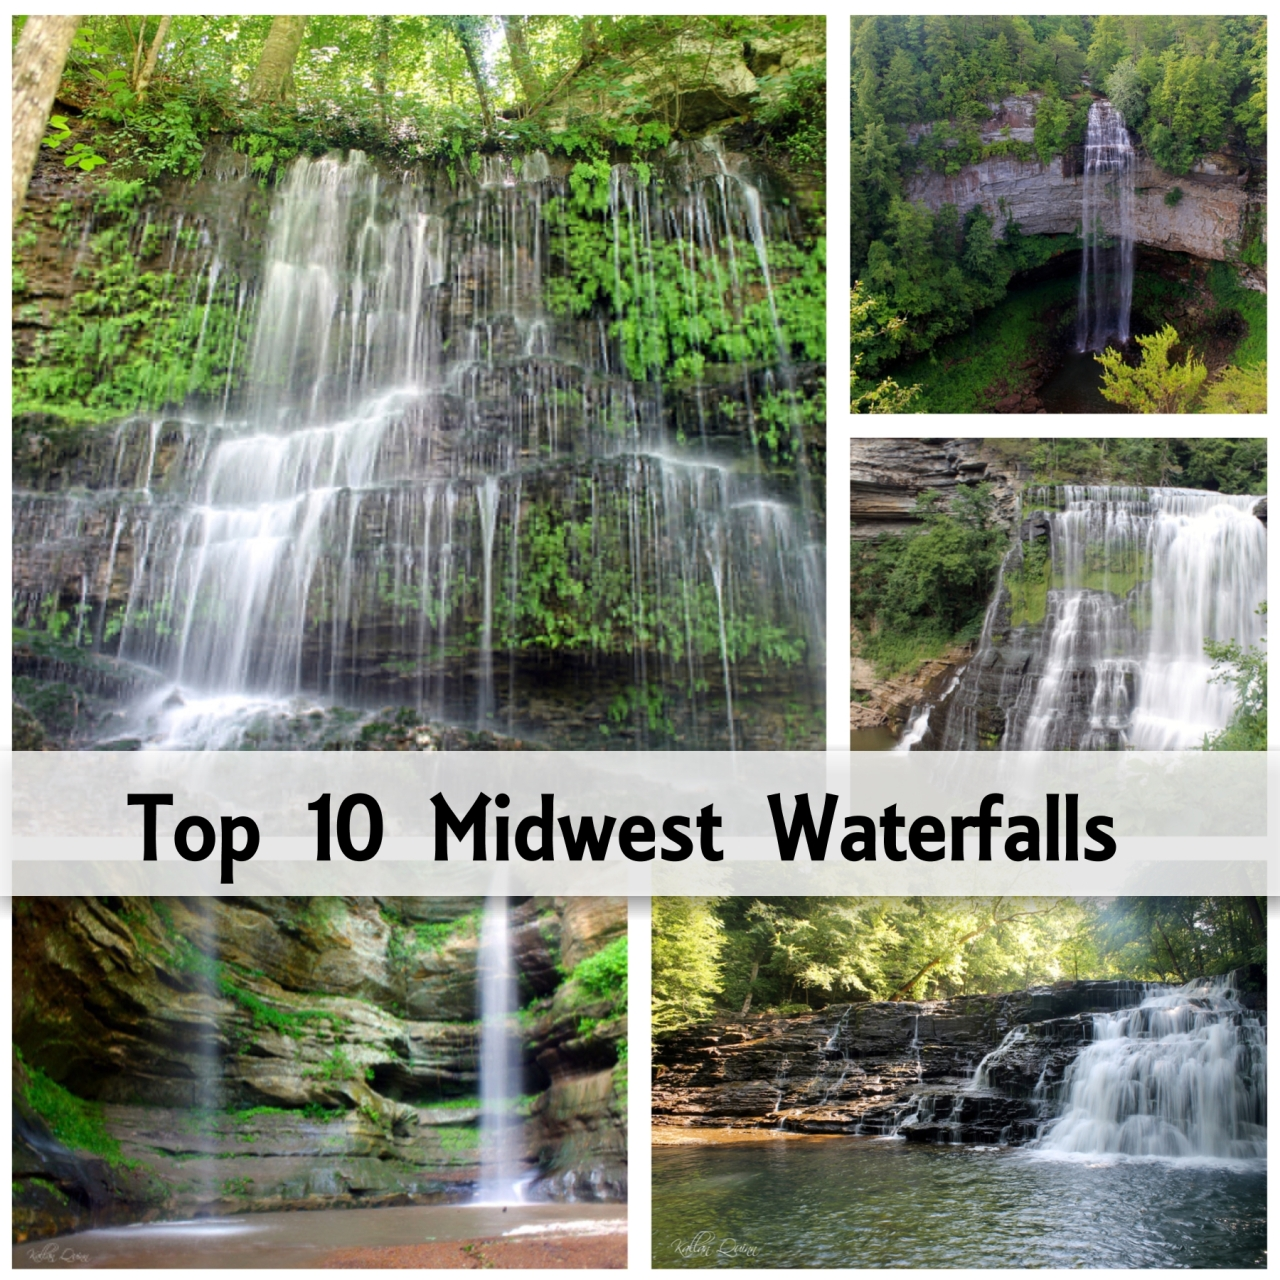 Top 10 Midwest Waterfalls